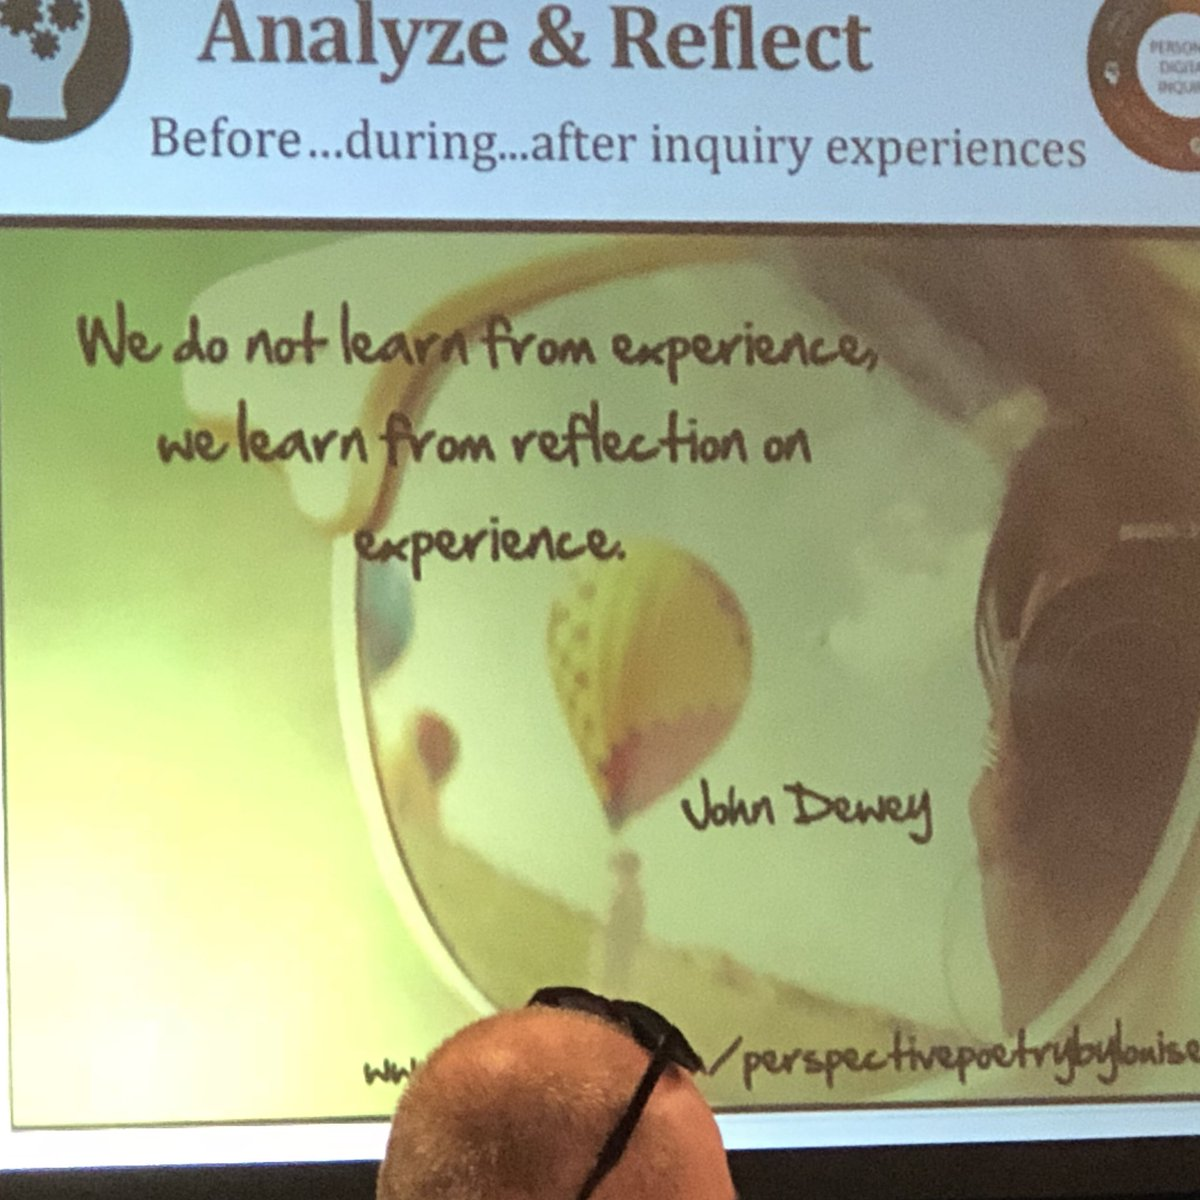 cerae content experience reflection analysis Content analysis is a research tool used to determine the presence of certain words or concepts within texts or sets of texts researchers quantify and analyze the presence, meanings and relationships of such.